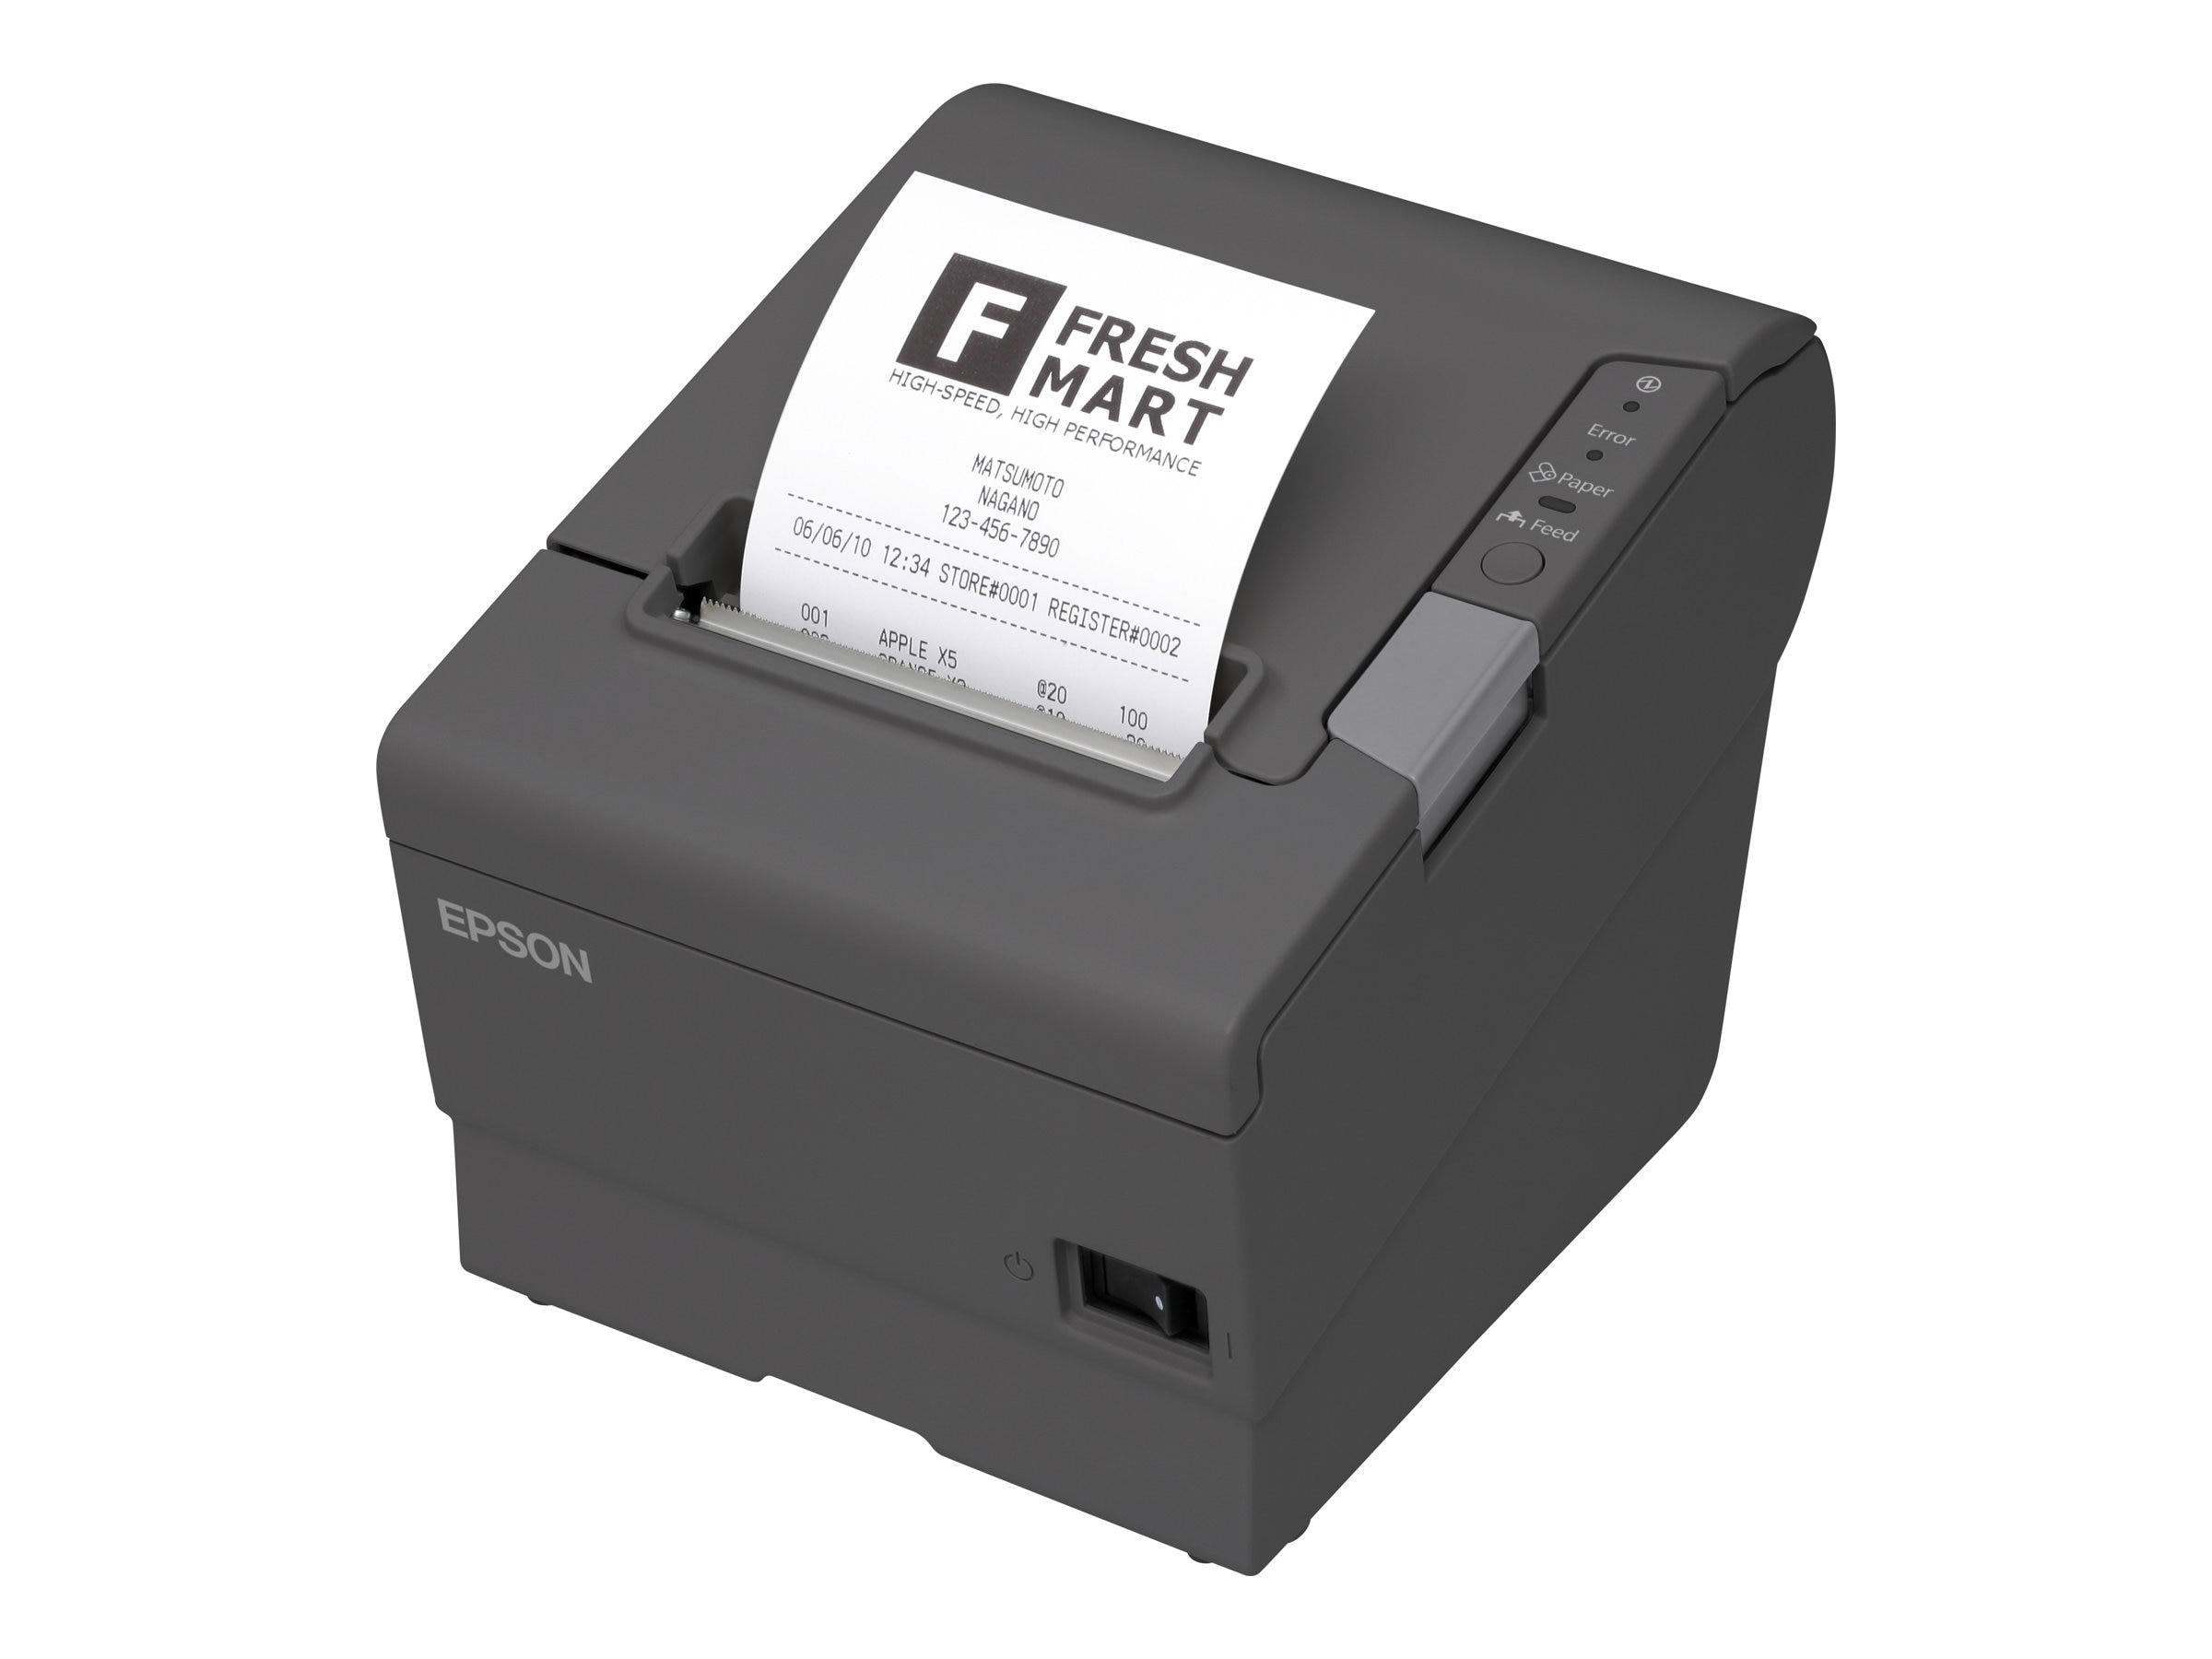 Epson TM-T88V USB Serial POS Printer - Dark Gray w  PS180 Power Supply, C31CA85084